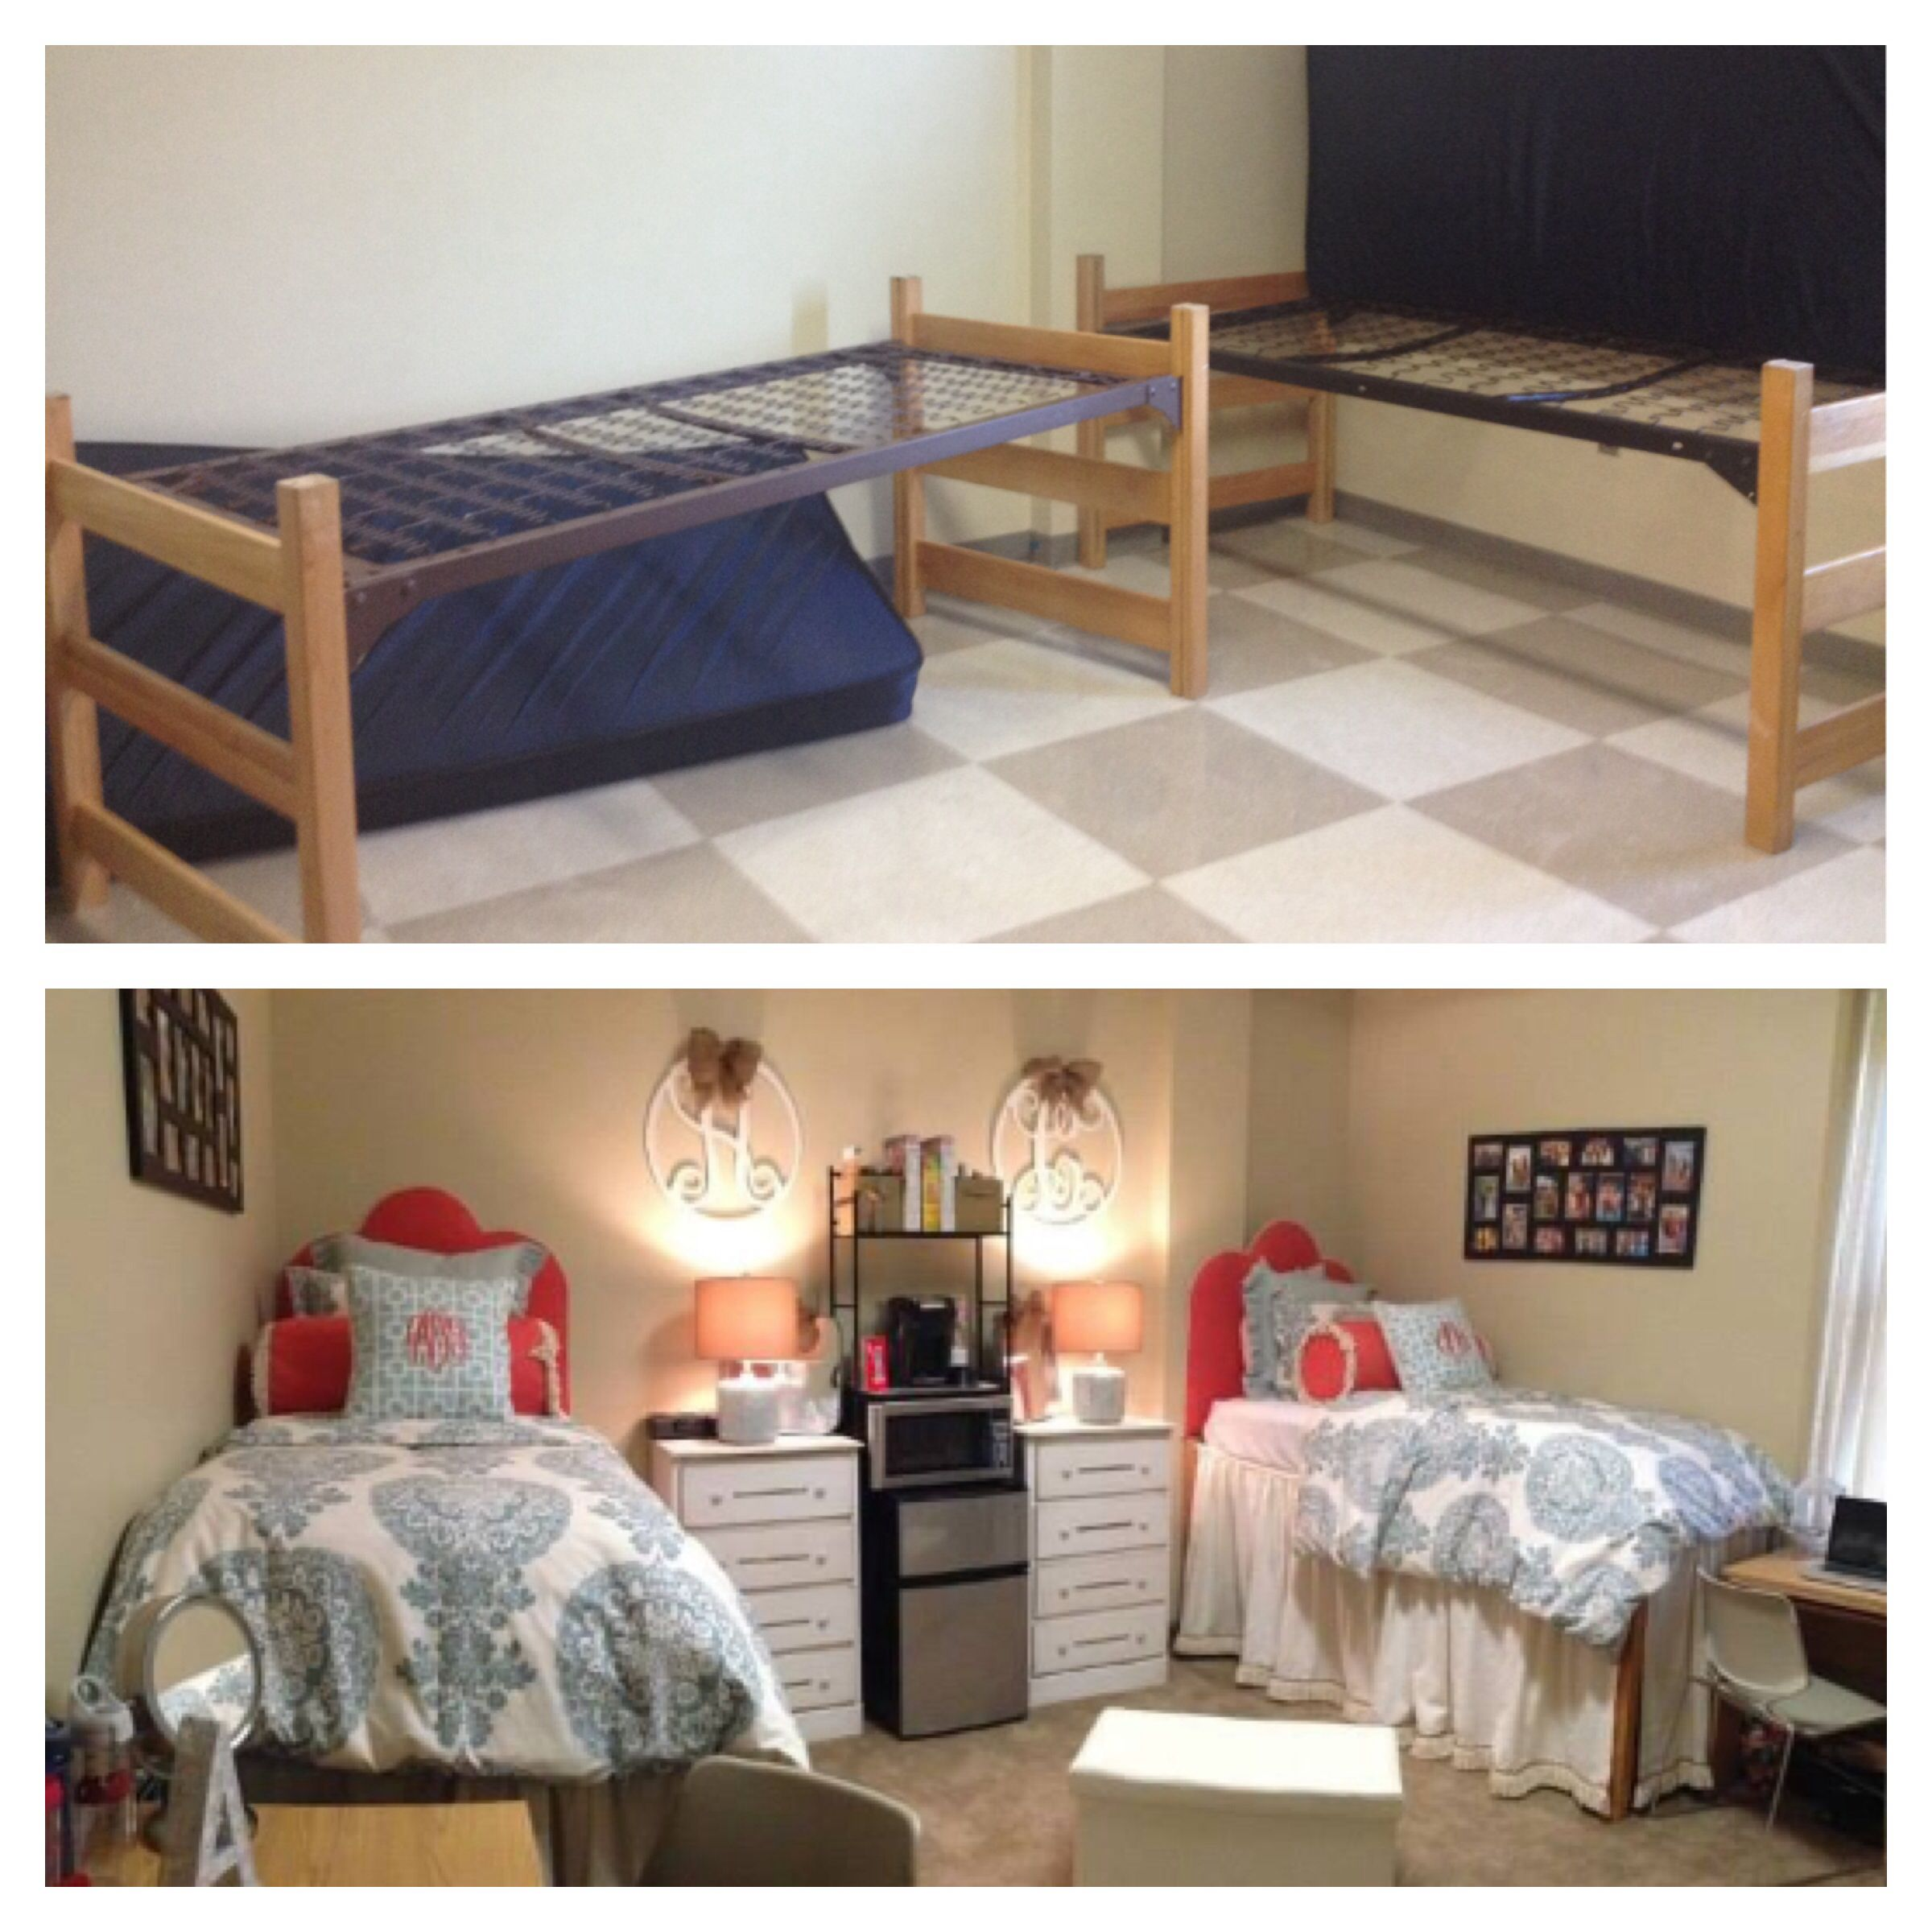 Dorm Room Furniture Layout - Ole miss dorm room before and after stewart hall